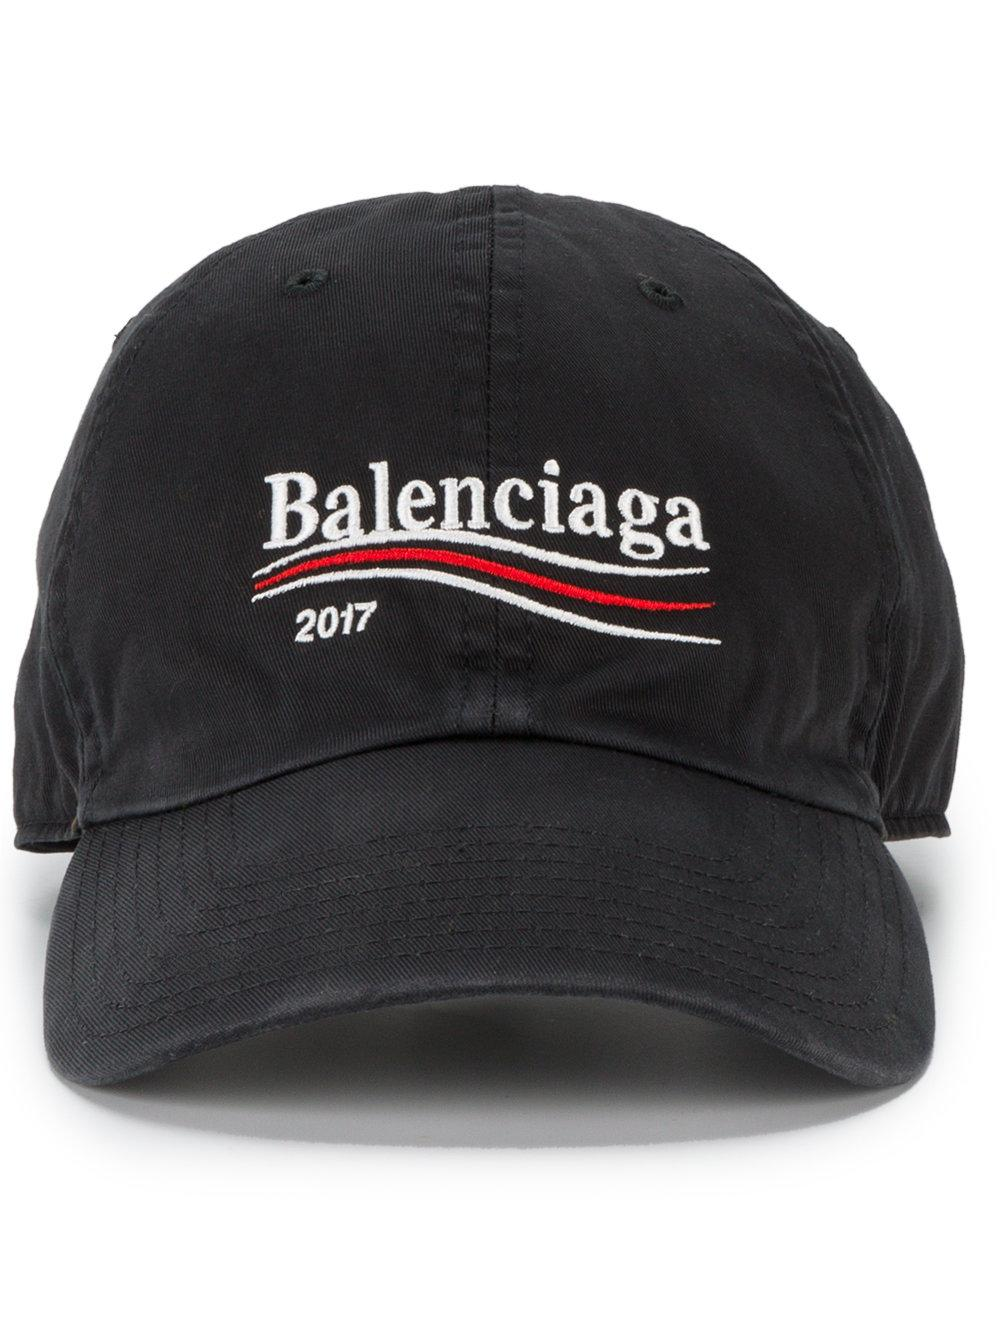 daeacf3b95e Lyst - Balenciaga Campaign Logo Embroidered Hat in Black .